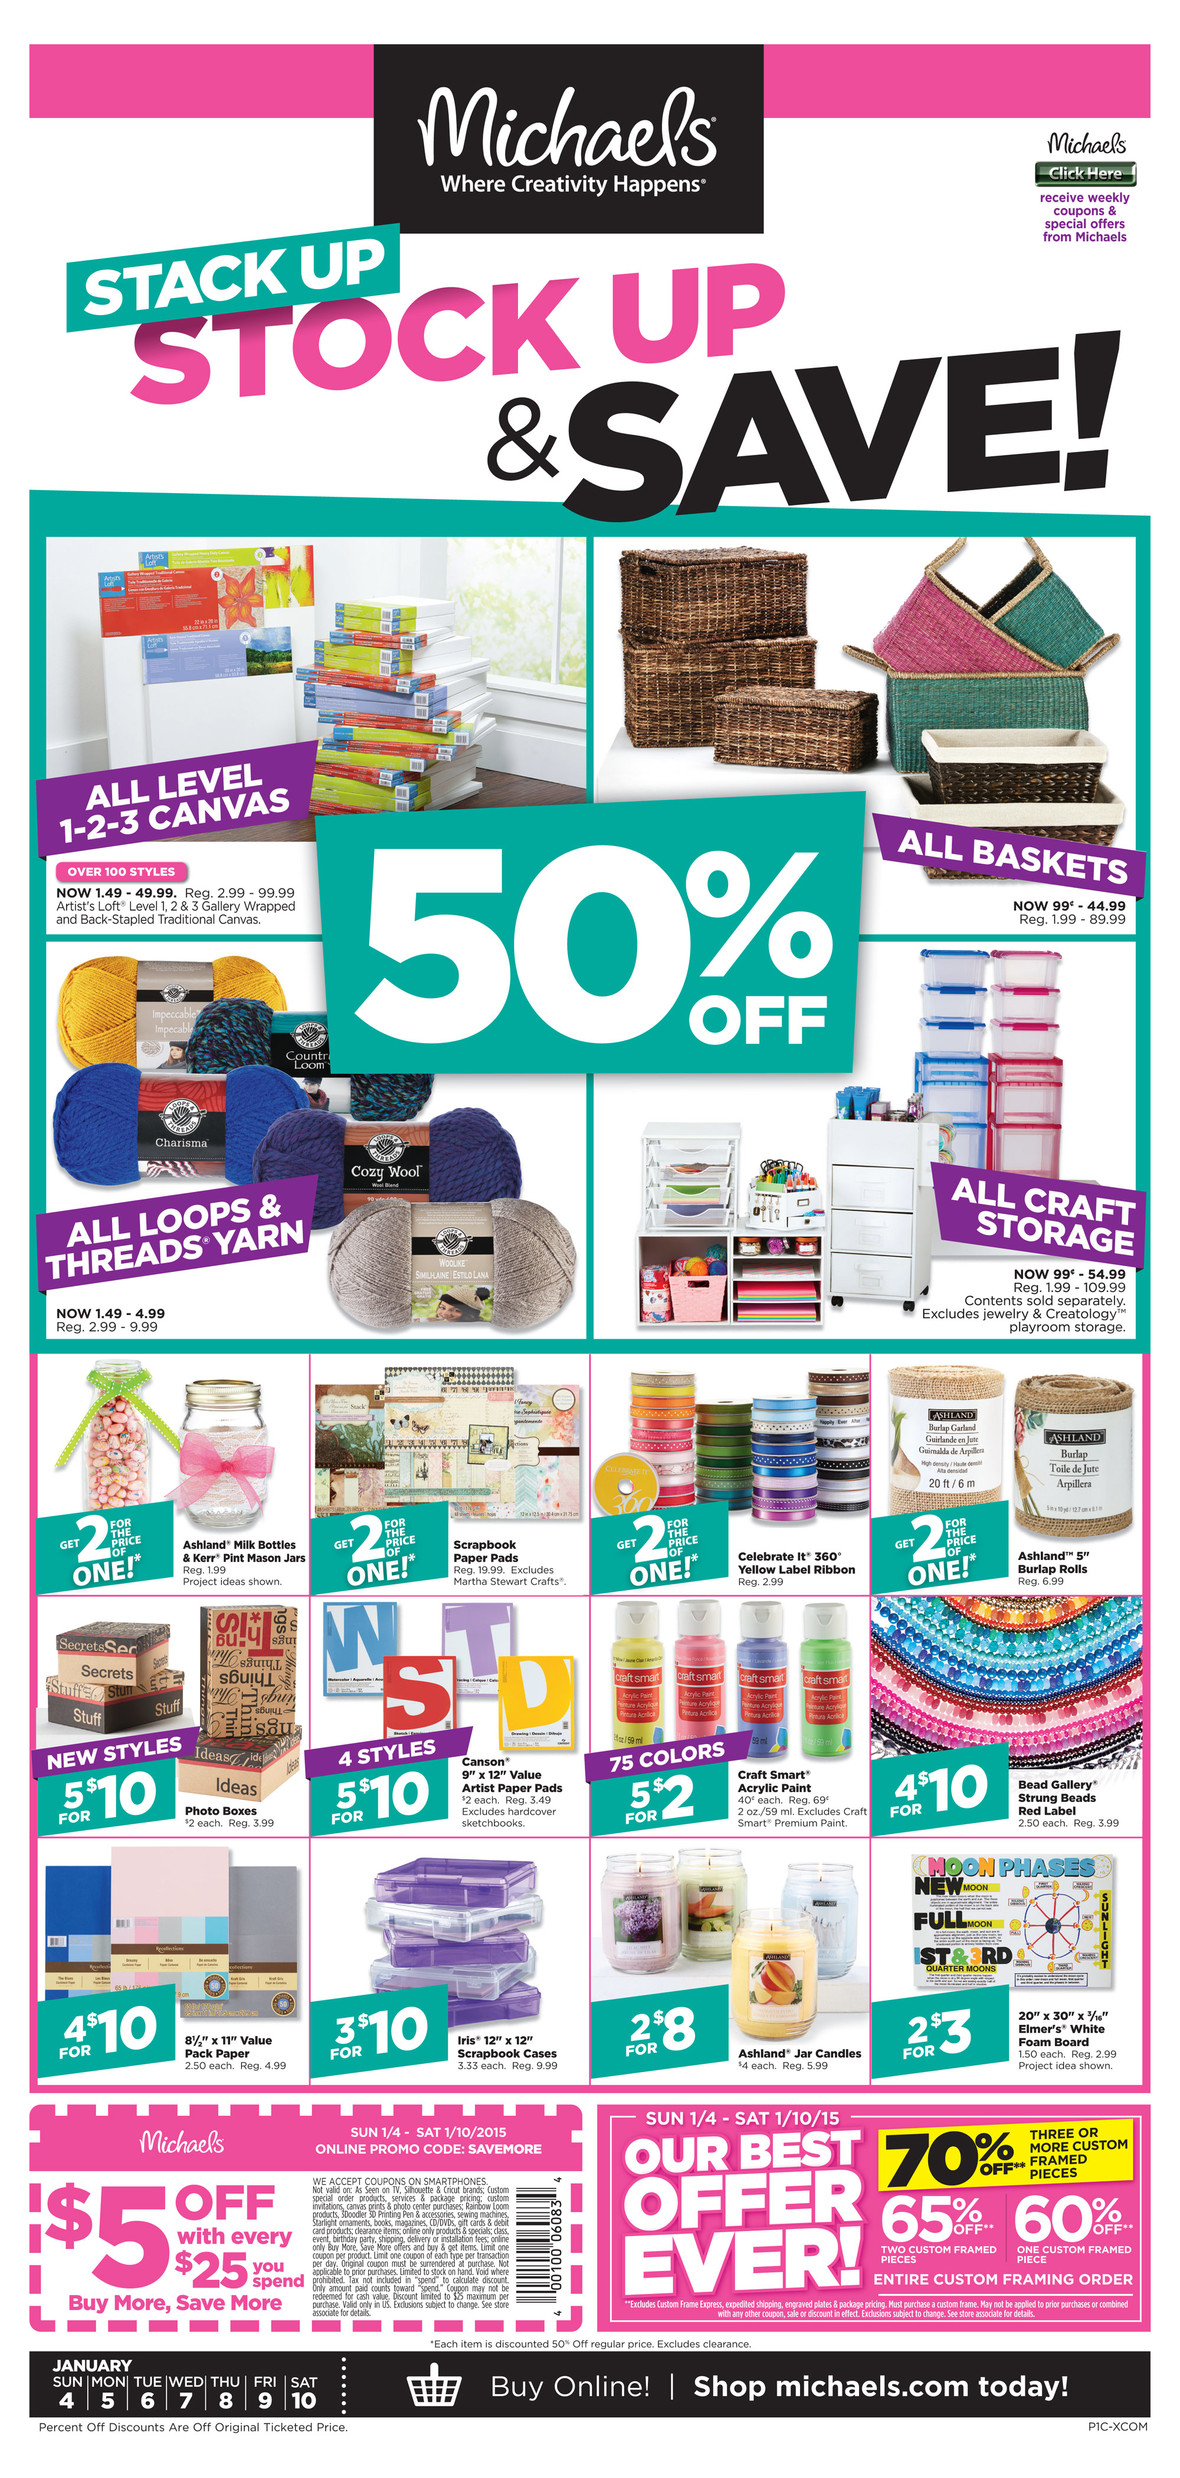 Michaels Coupon April 2017 $5 off every $25 at Michaels, or online via promo code SAVEMORE